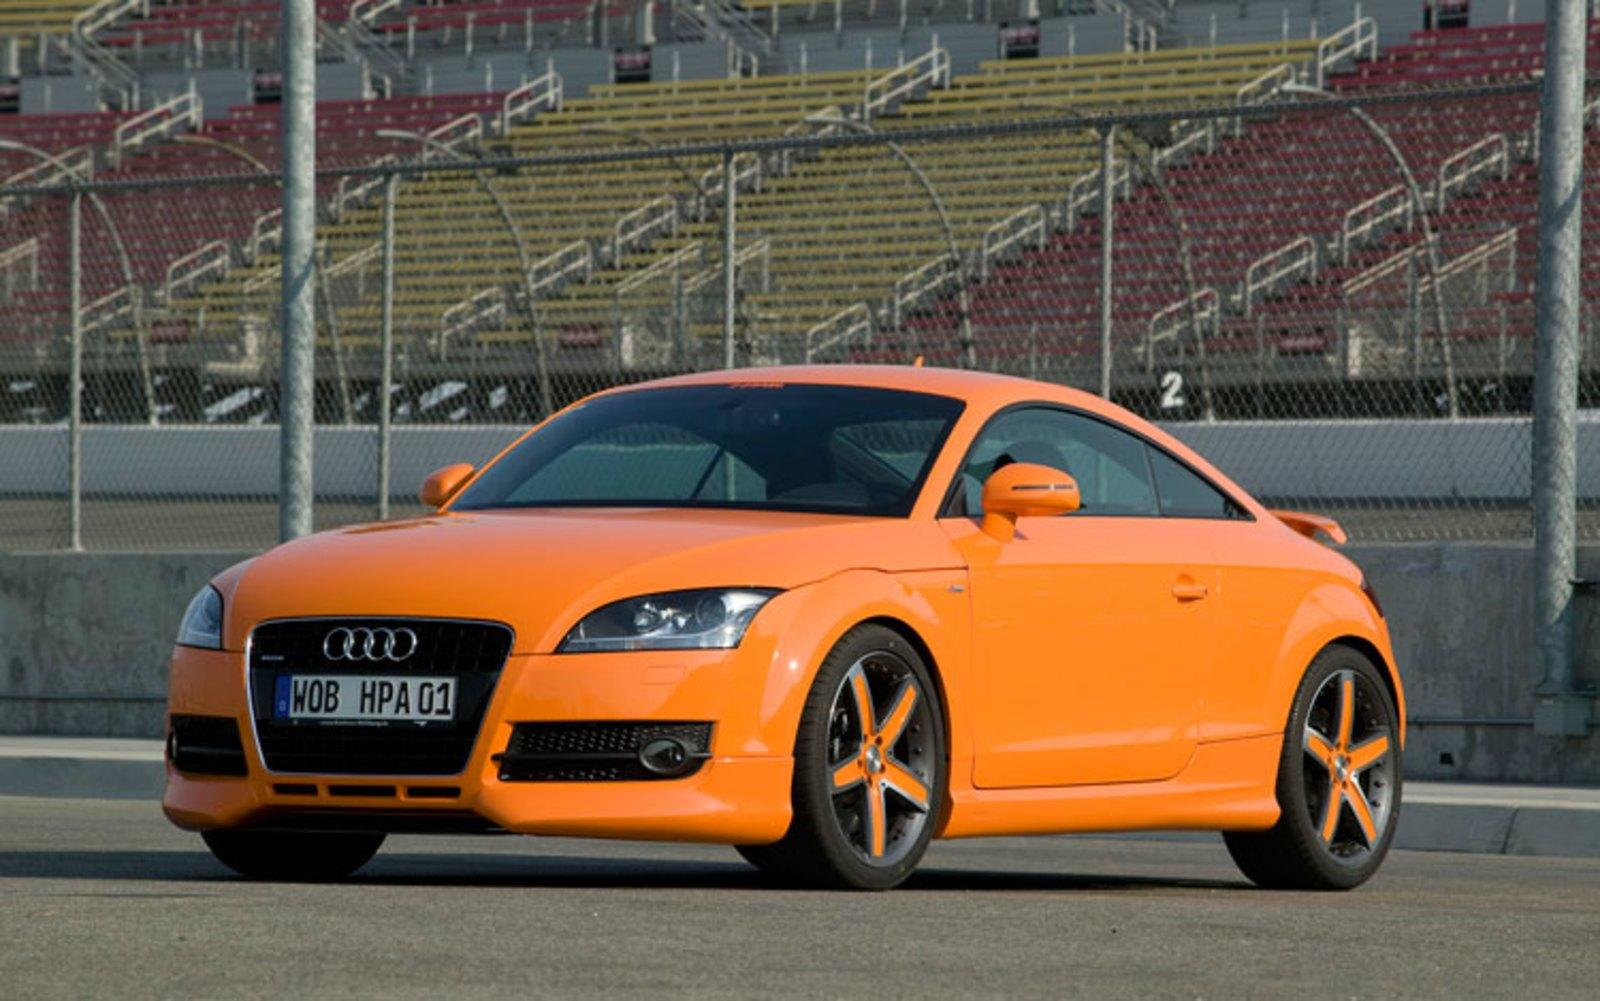 2008 audi tt by hpa motorsports news top speed. Black Bedroom Furniture Sets. Home Design Ideas